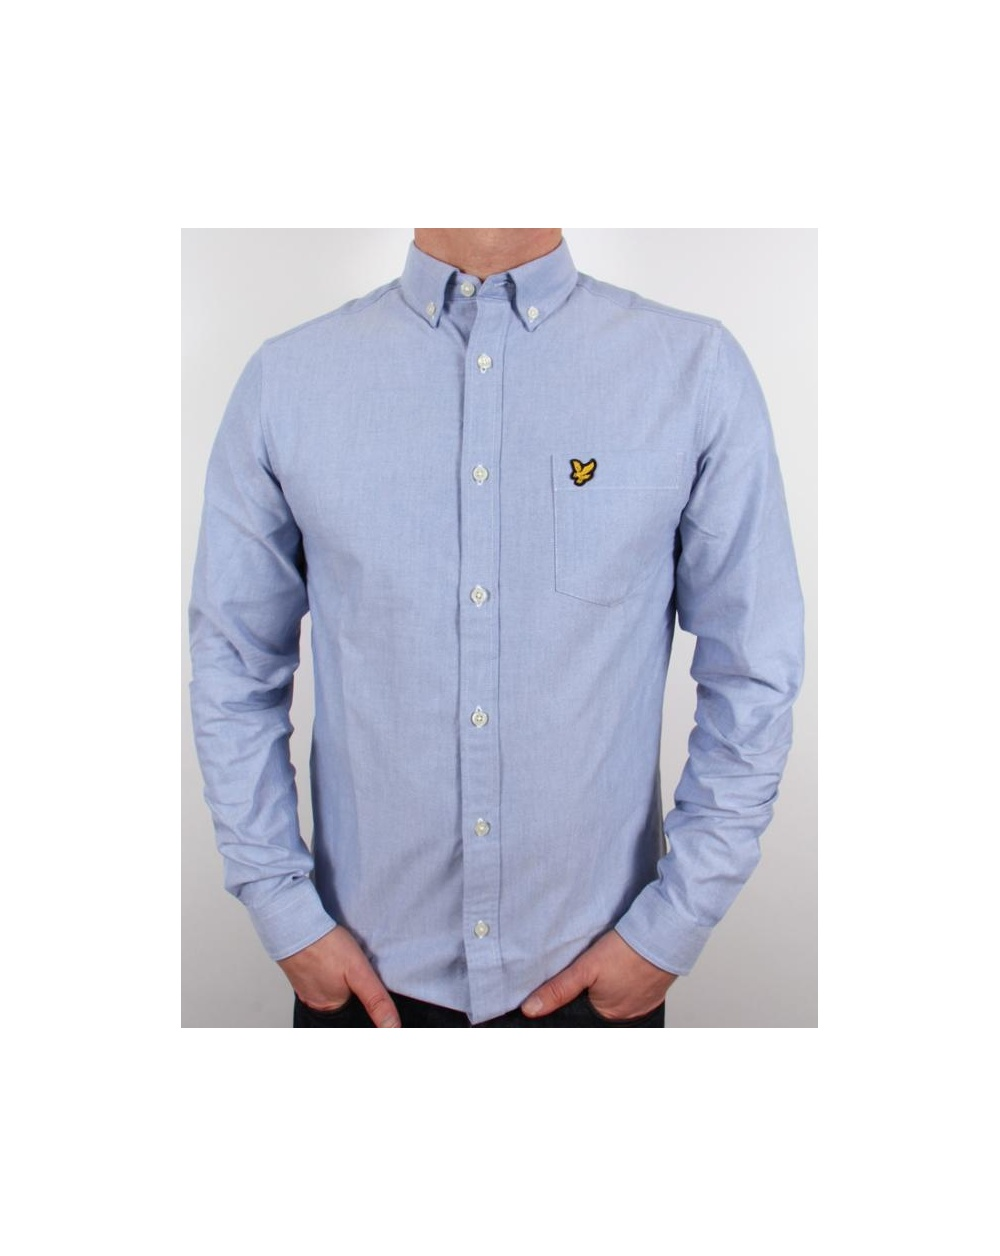 Lyle and scott long sleeve oxford shirt french blue for French blue oxford shirt